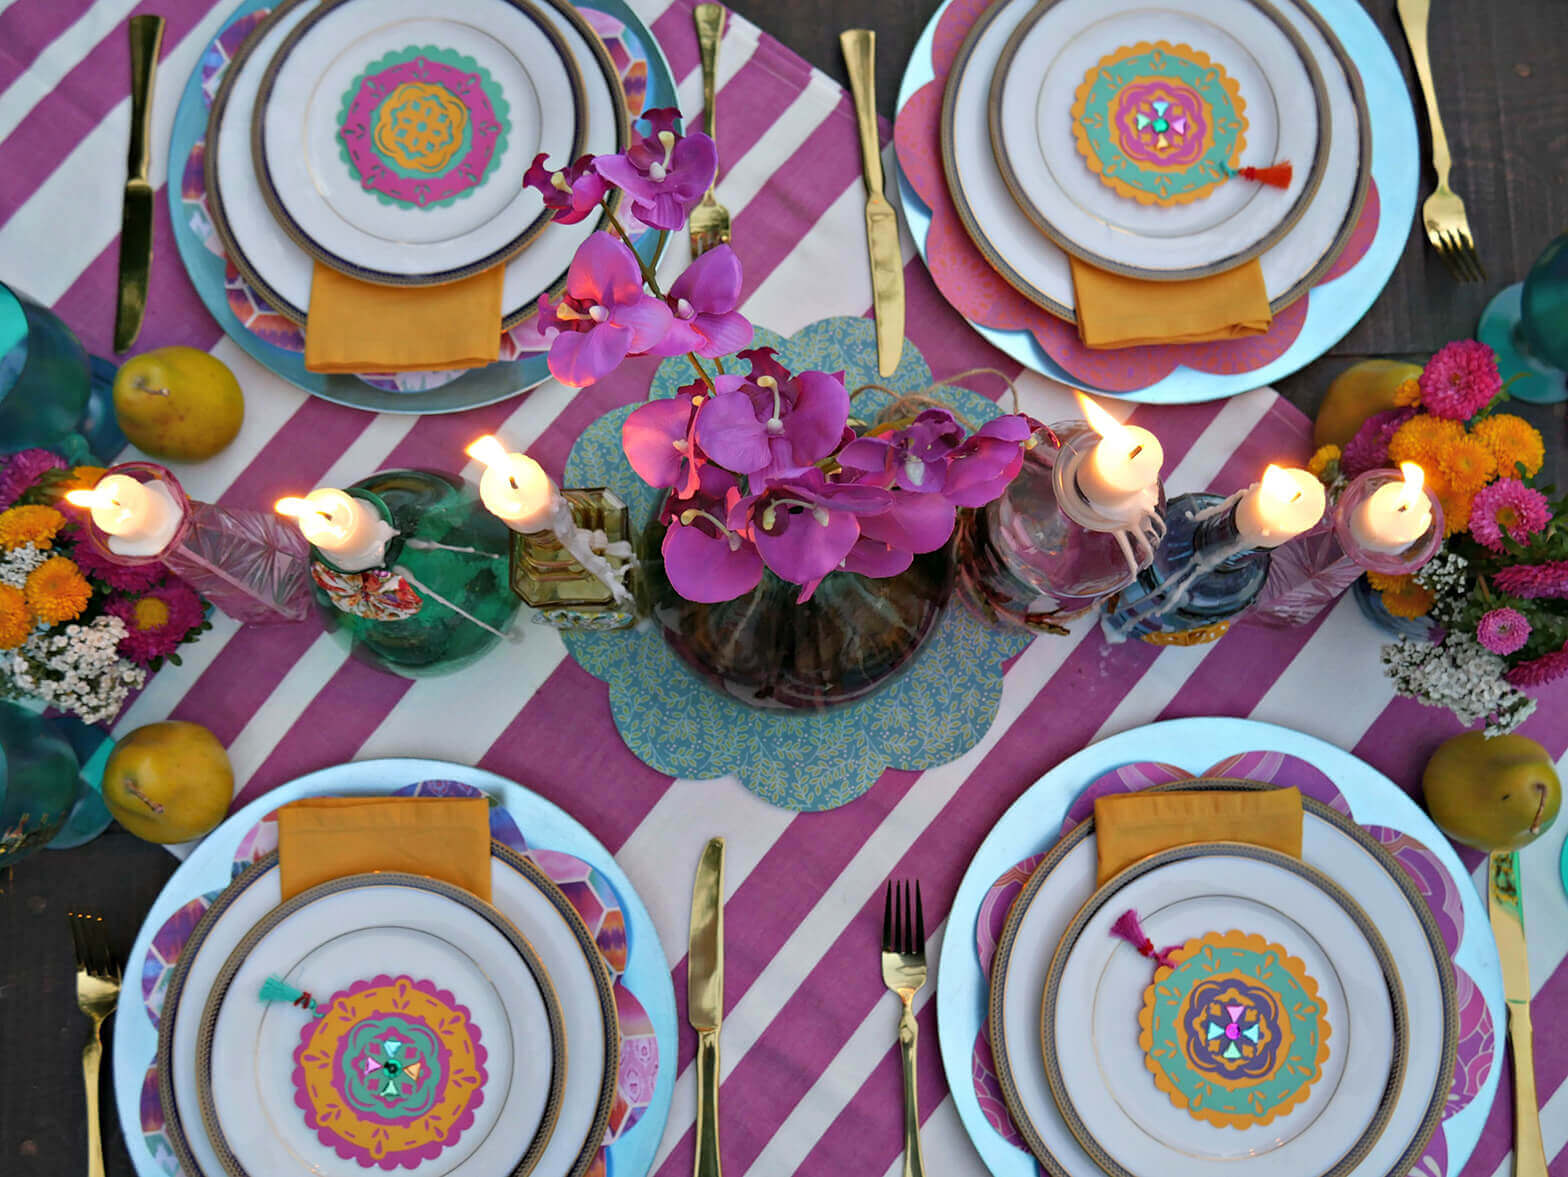 So many great Gypsy inspired engagement party ideas from Mint Event Design including this gorgeous jewel toned tablescape www.minteventdesign.com #tablesetting #tablescapes #bohochic